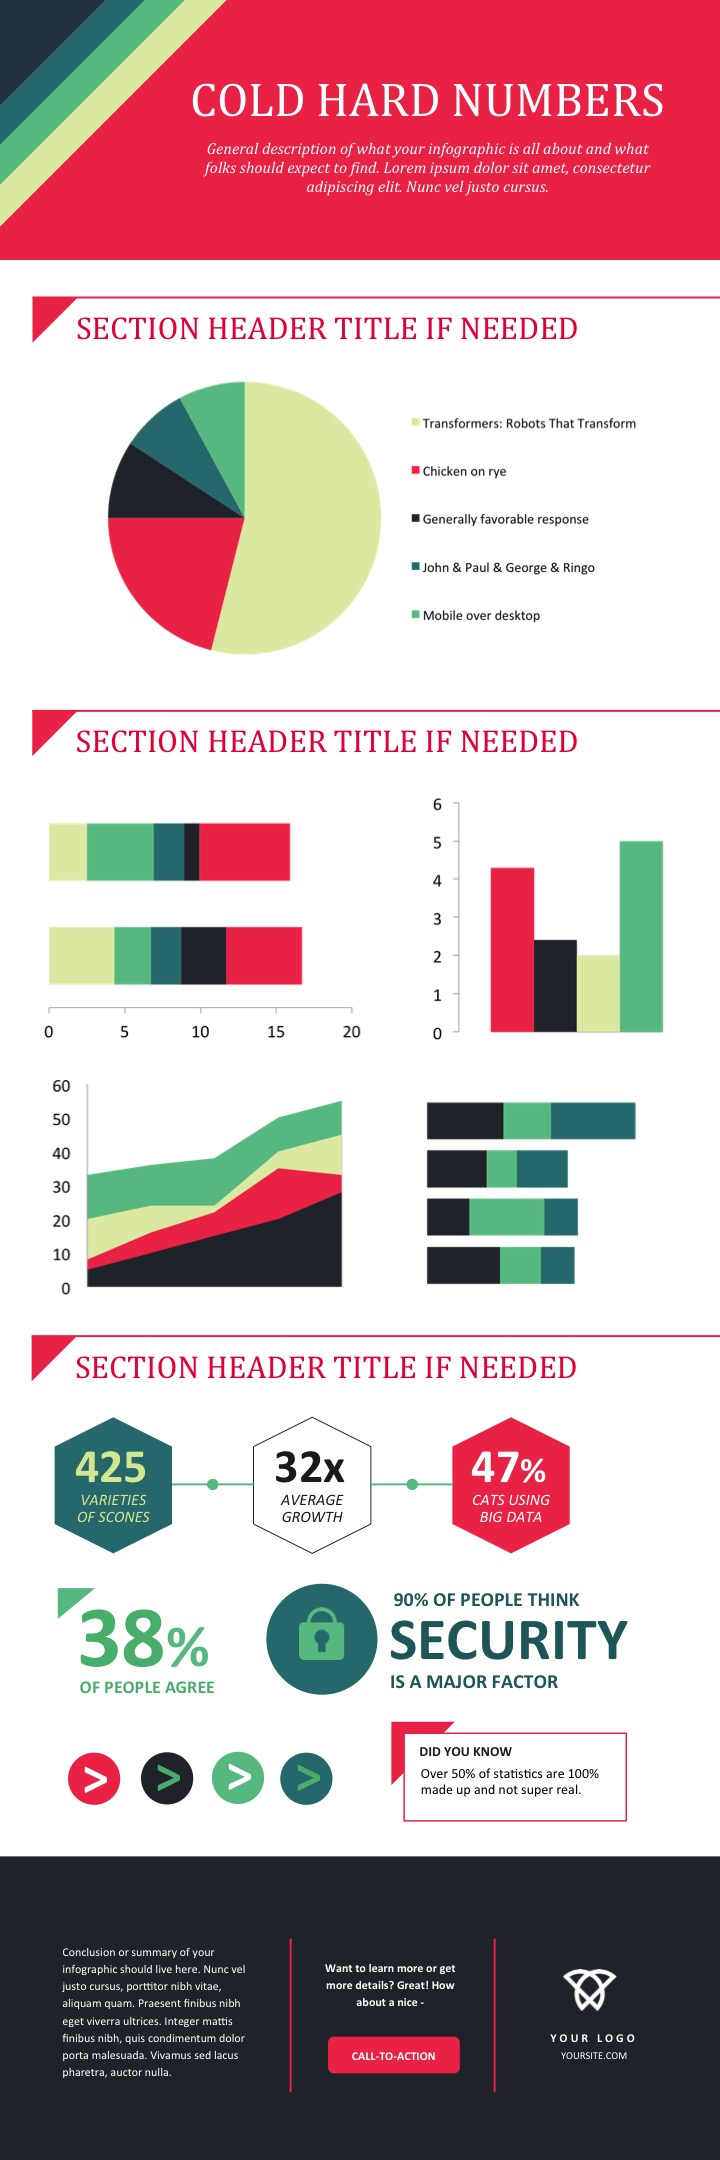 15 free infographic templates infographic template toneelgroepblik Image collections